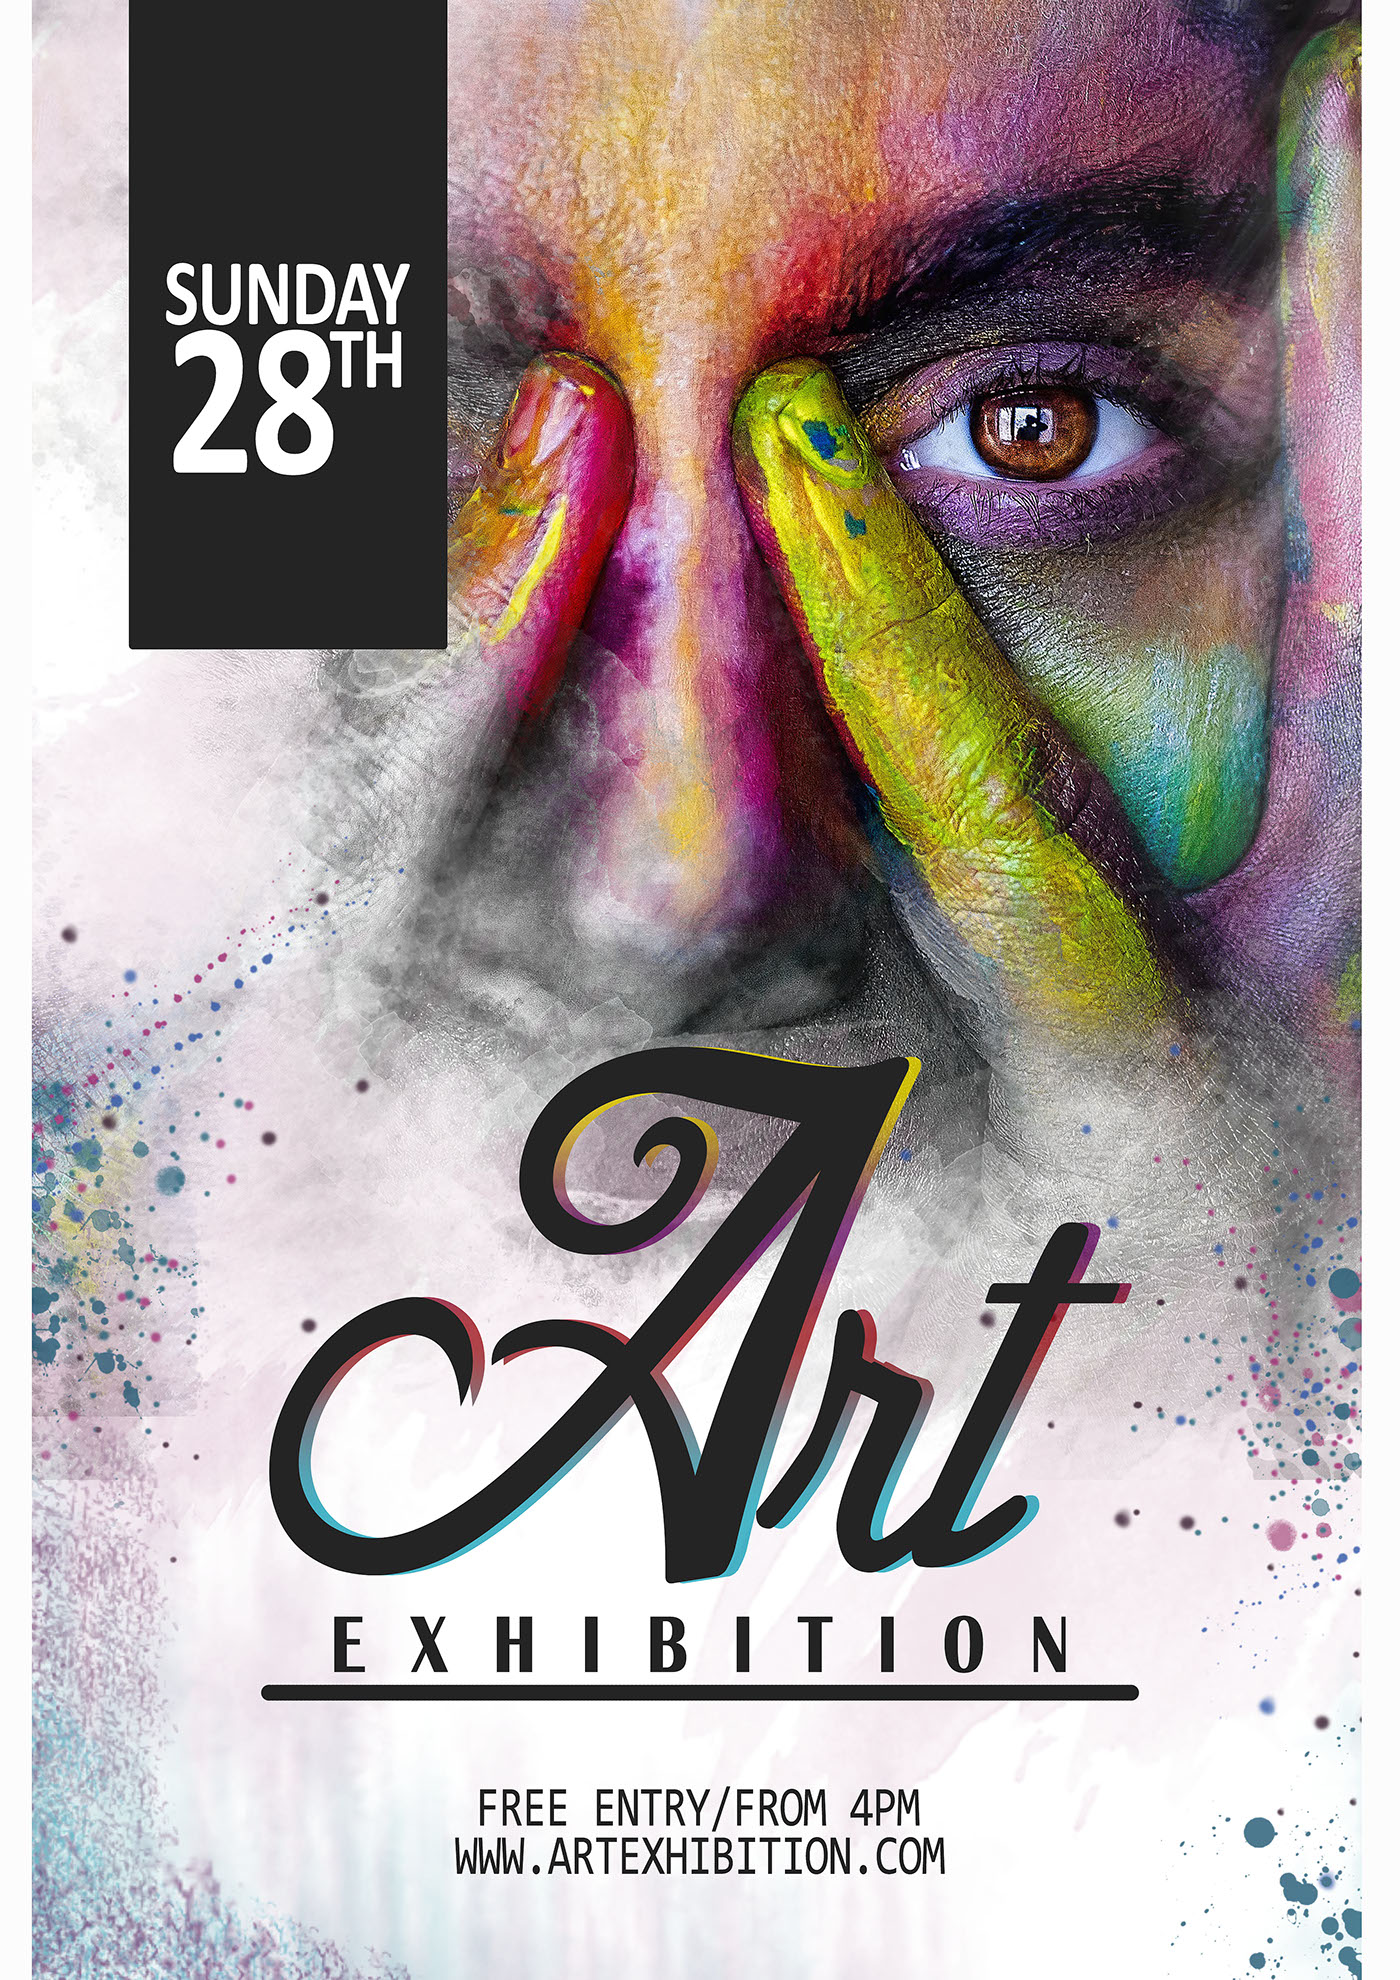 Art Exhibition Poster Designcreated By Using Adobe Photoshop